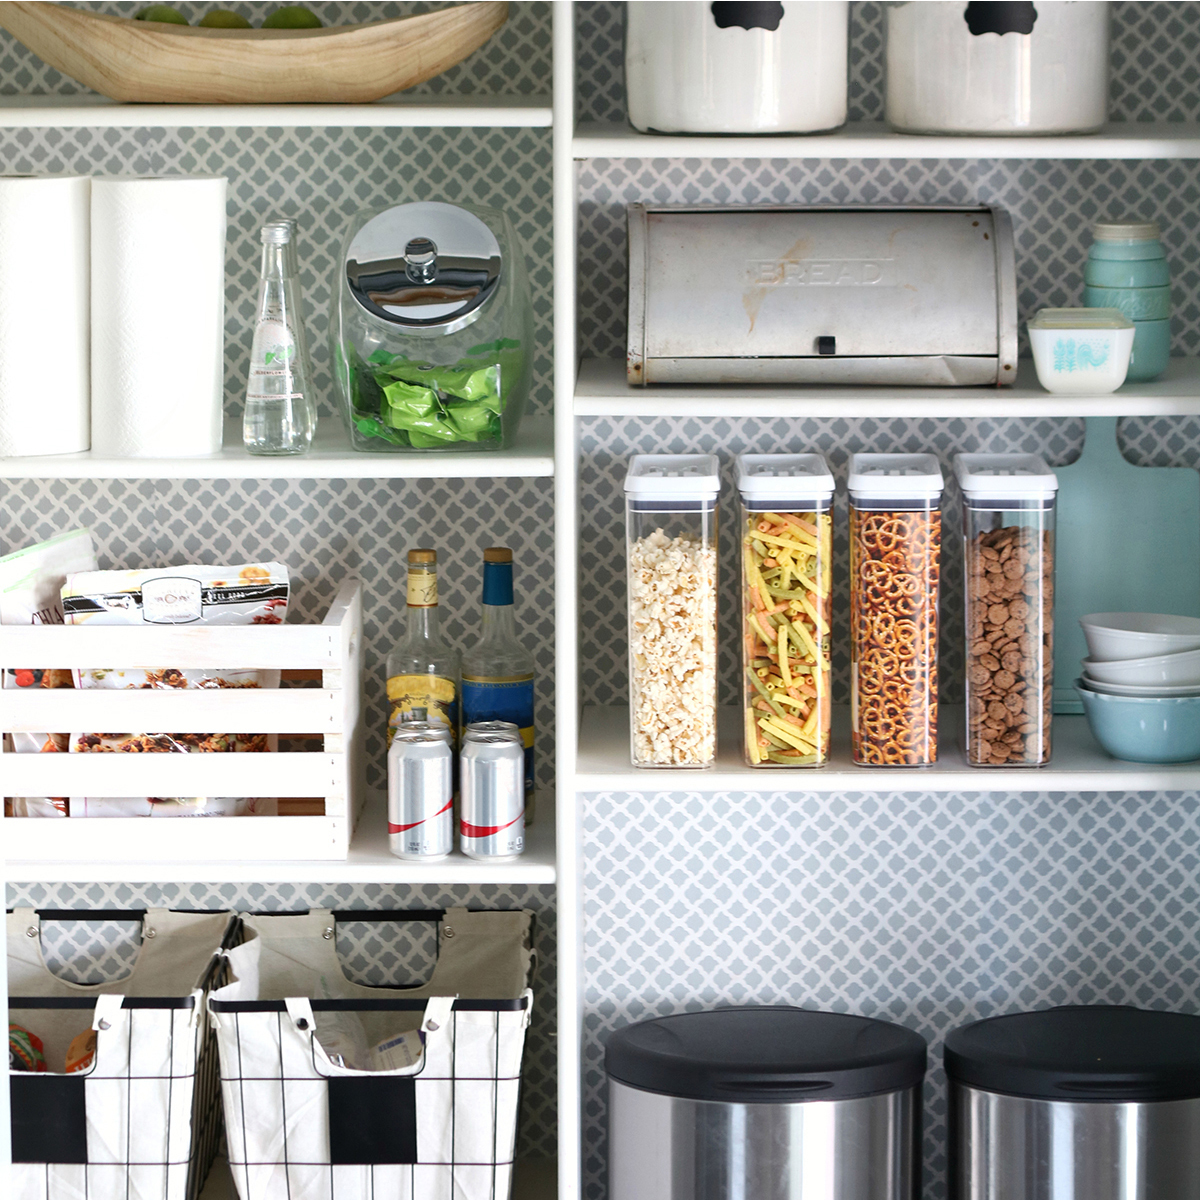 Open-style pantry featuring oval stainless steel waste cans, medium wire baskets, and Flip-Tite containers for organized storage. photo